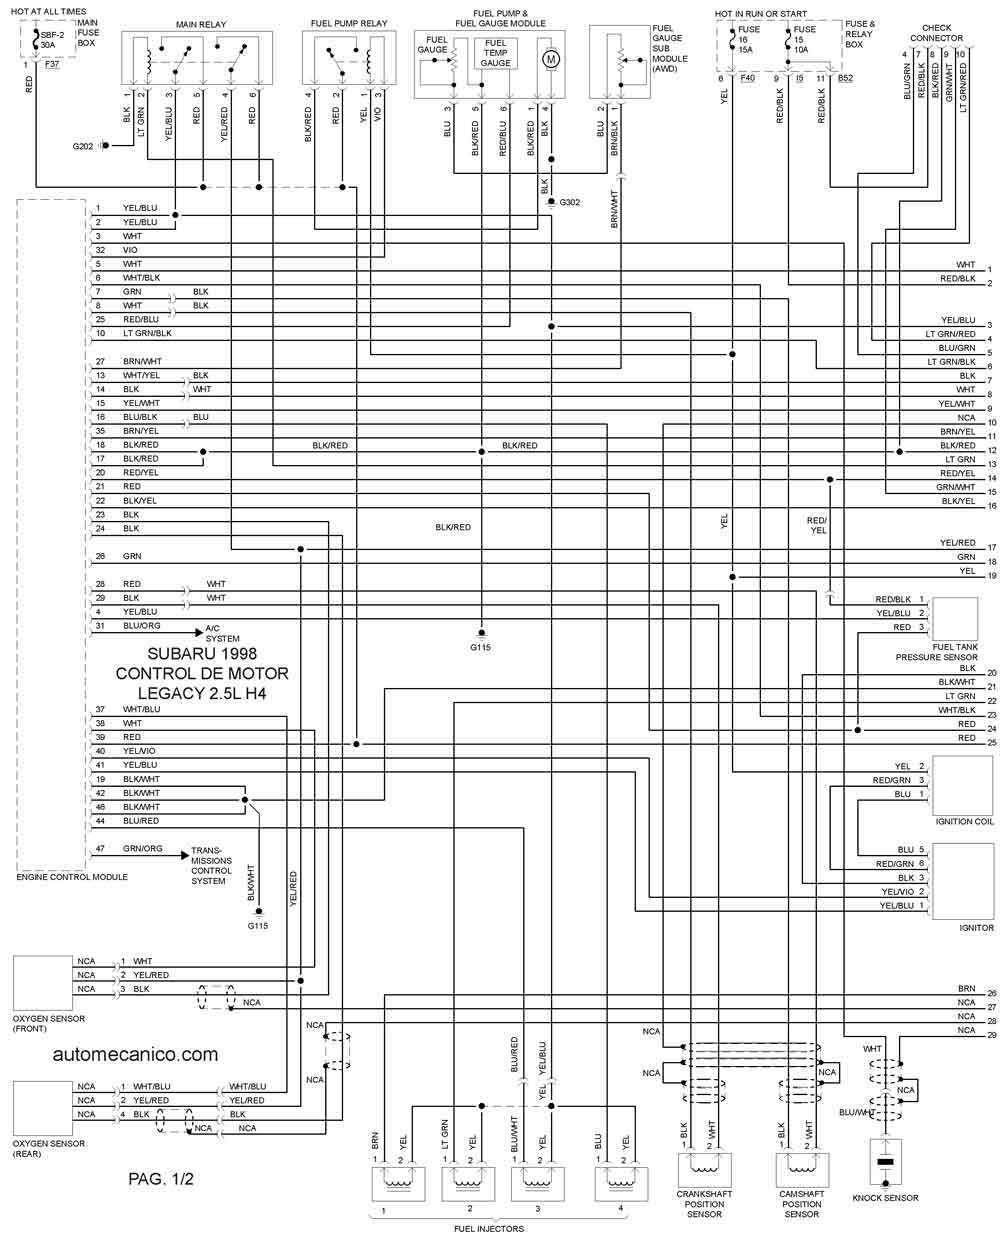 3800 Series Engine Diagram further 1965 Mustang Wiring Diagrams in addition 2009 Toyota Prius Fuse Box Diagram as well 2000 Mazda MPV Transmission Diagram as well Index4. on subaru forester wiring diagram